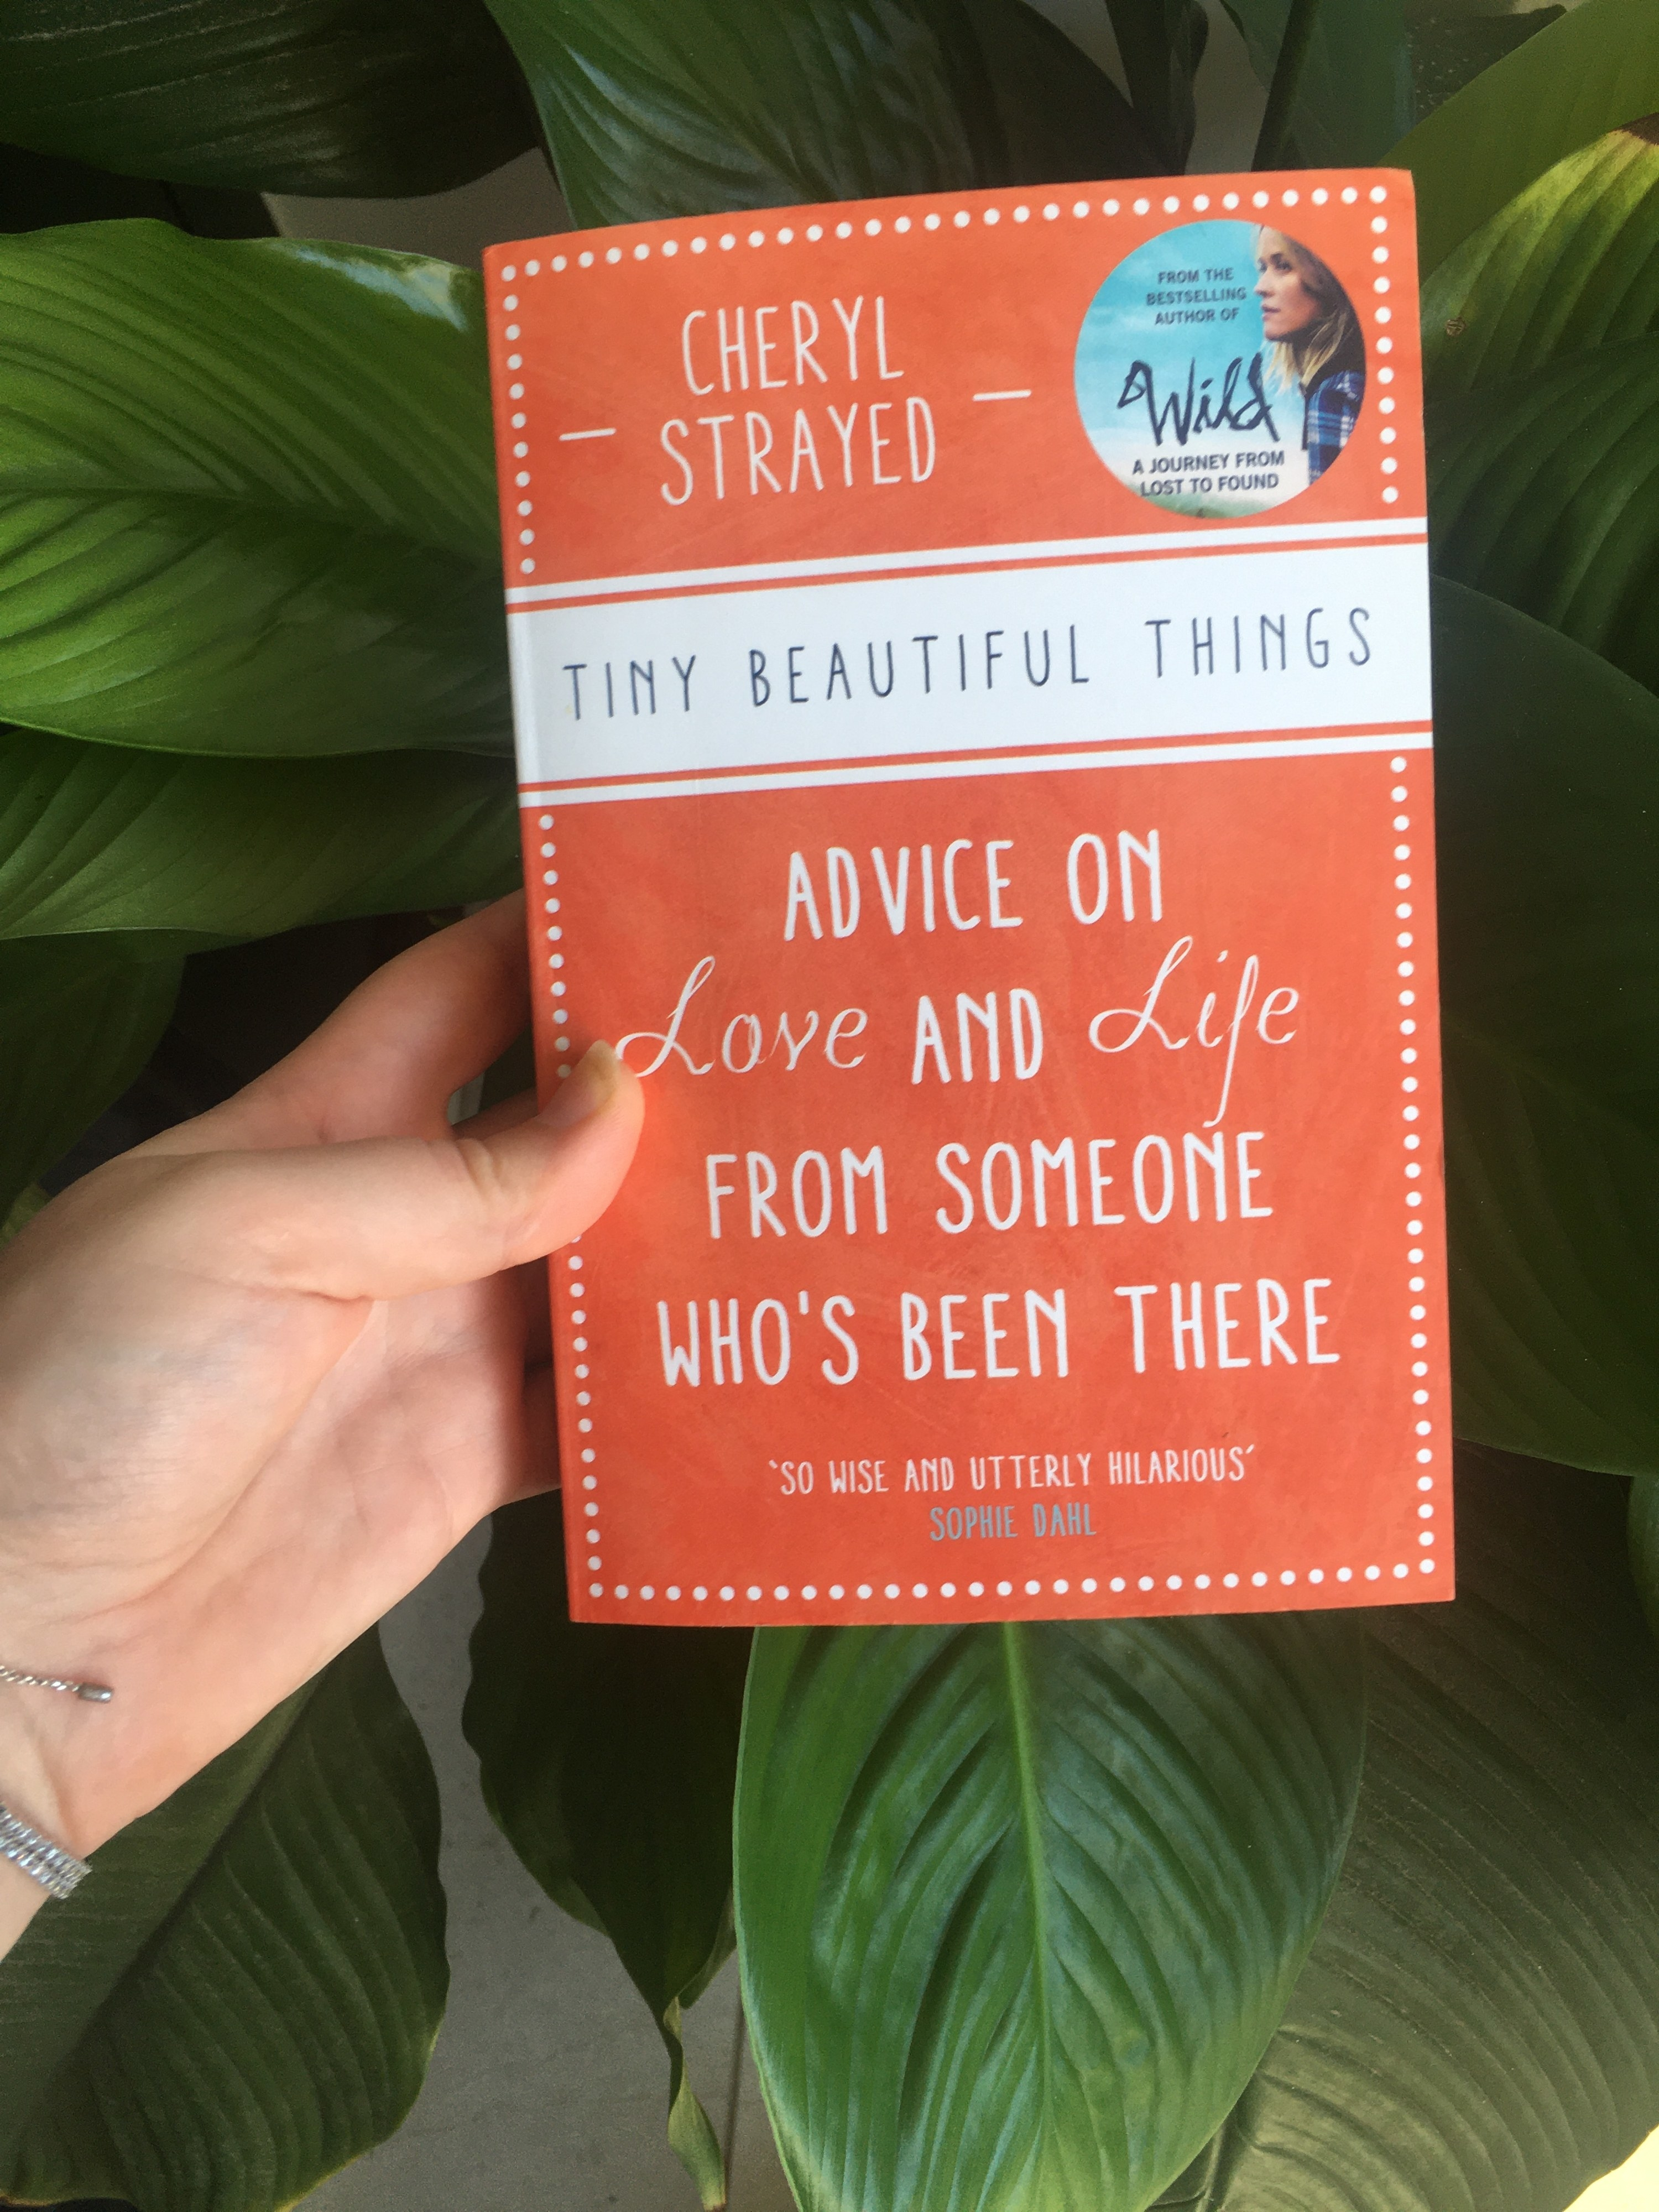 Book held in front of a plant with the cover taken up by title